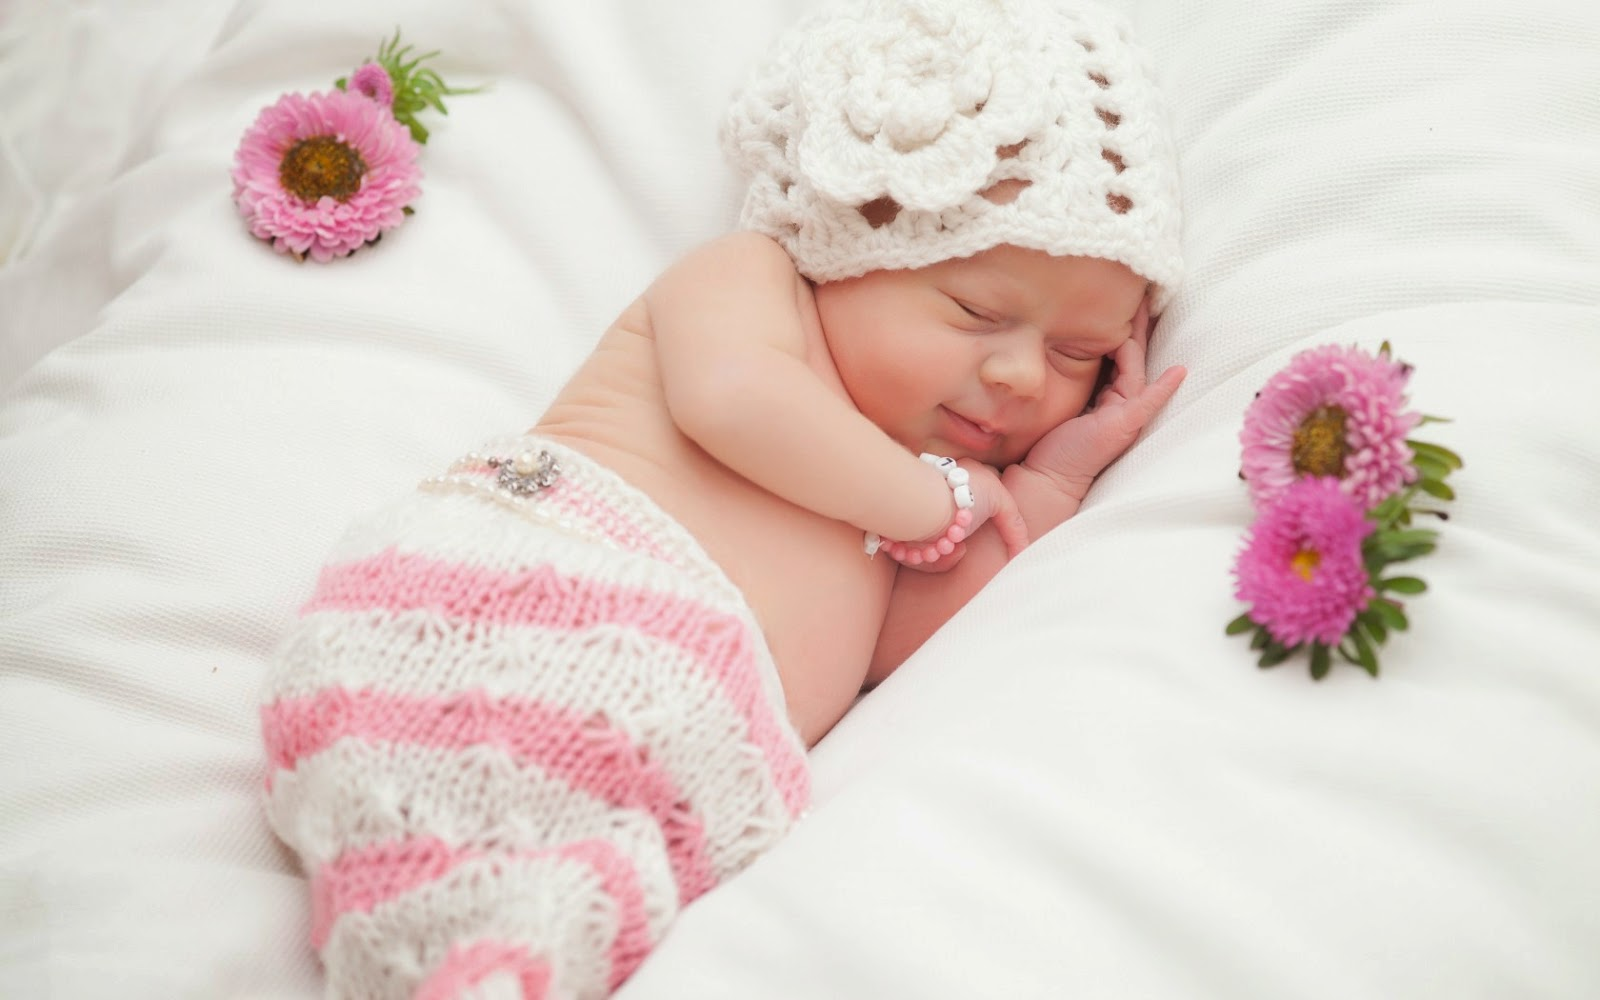 Baby Wallpapers Adorable Cute